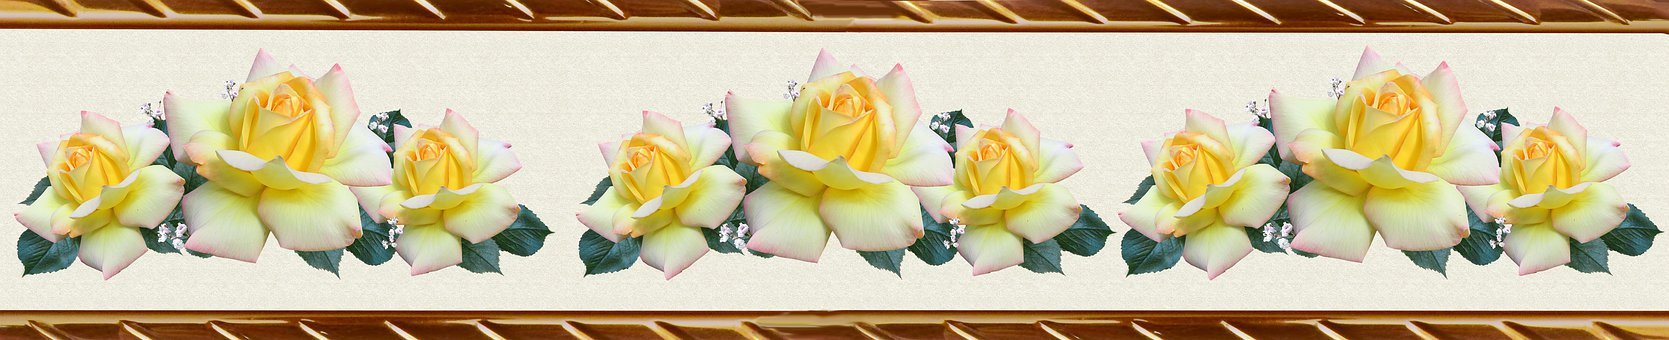 Border, Decorative Strip, Floral, Roses